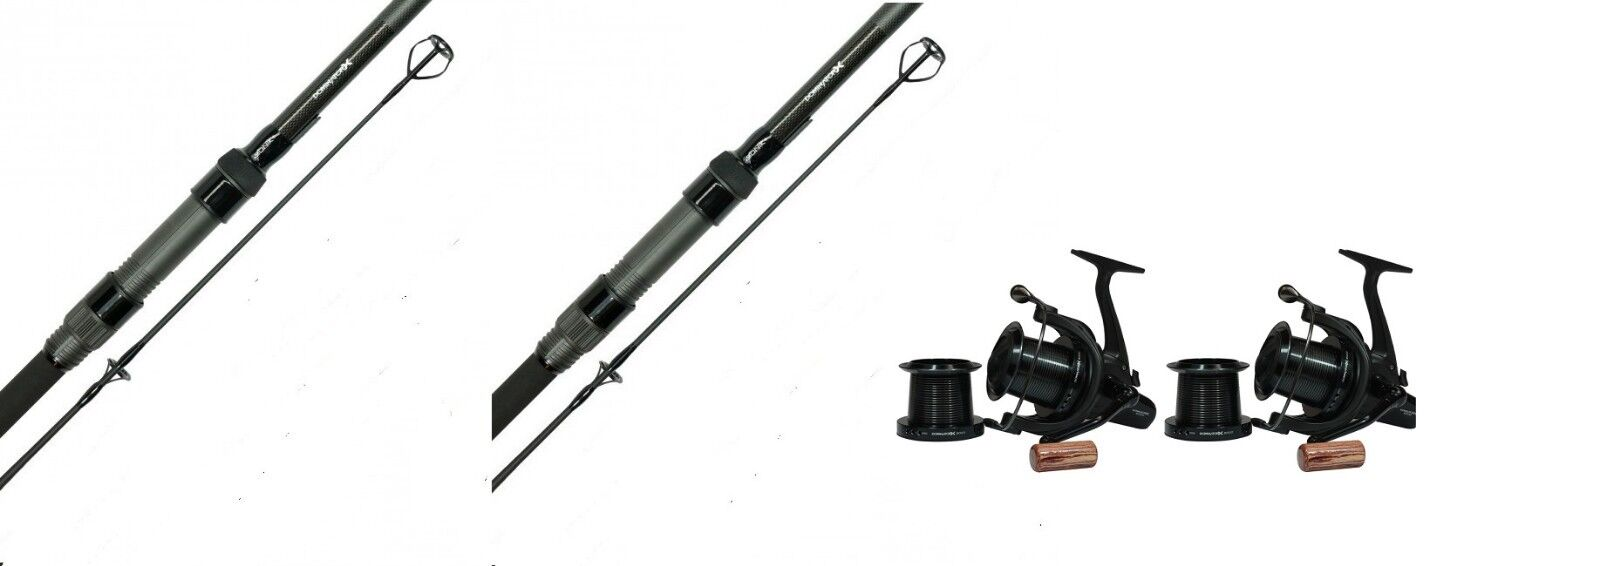 2 X Sonik Dominator X Carp Rods 12ft 3.25LB 50MM Butts + 2 X Dominator Reels